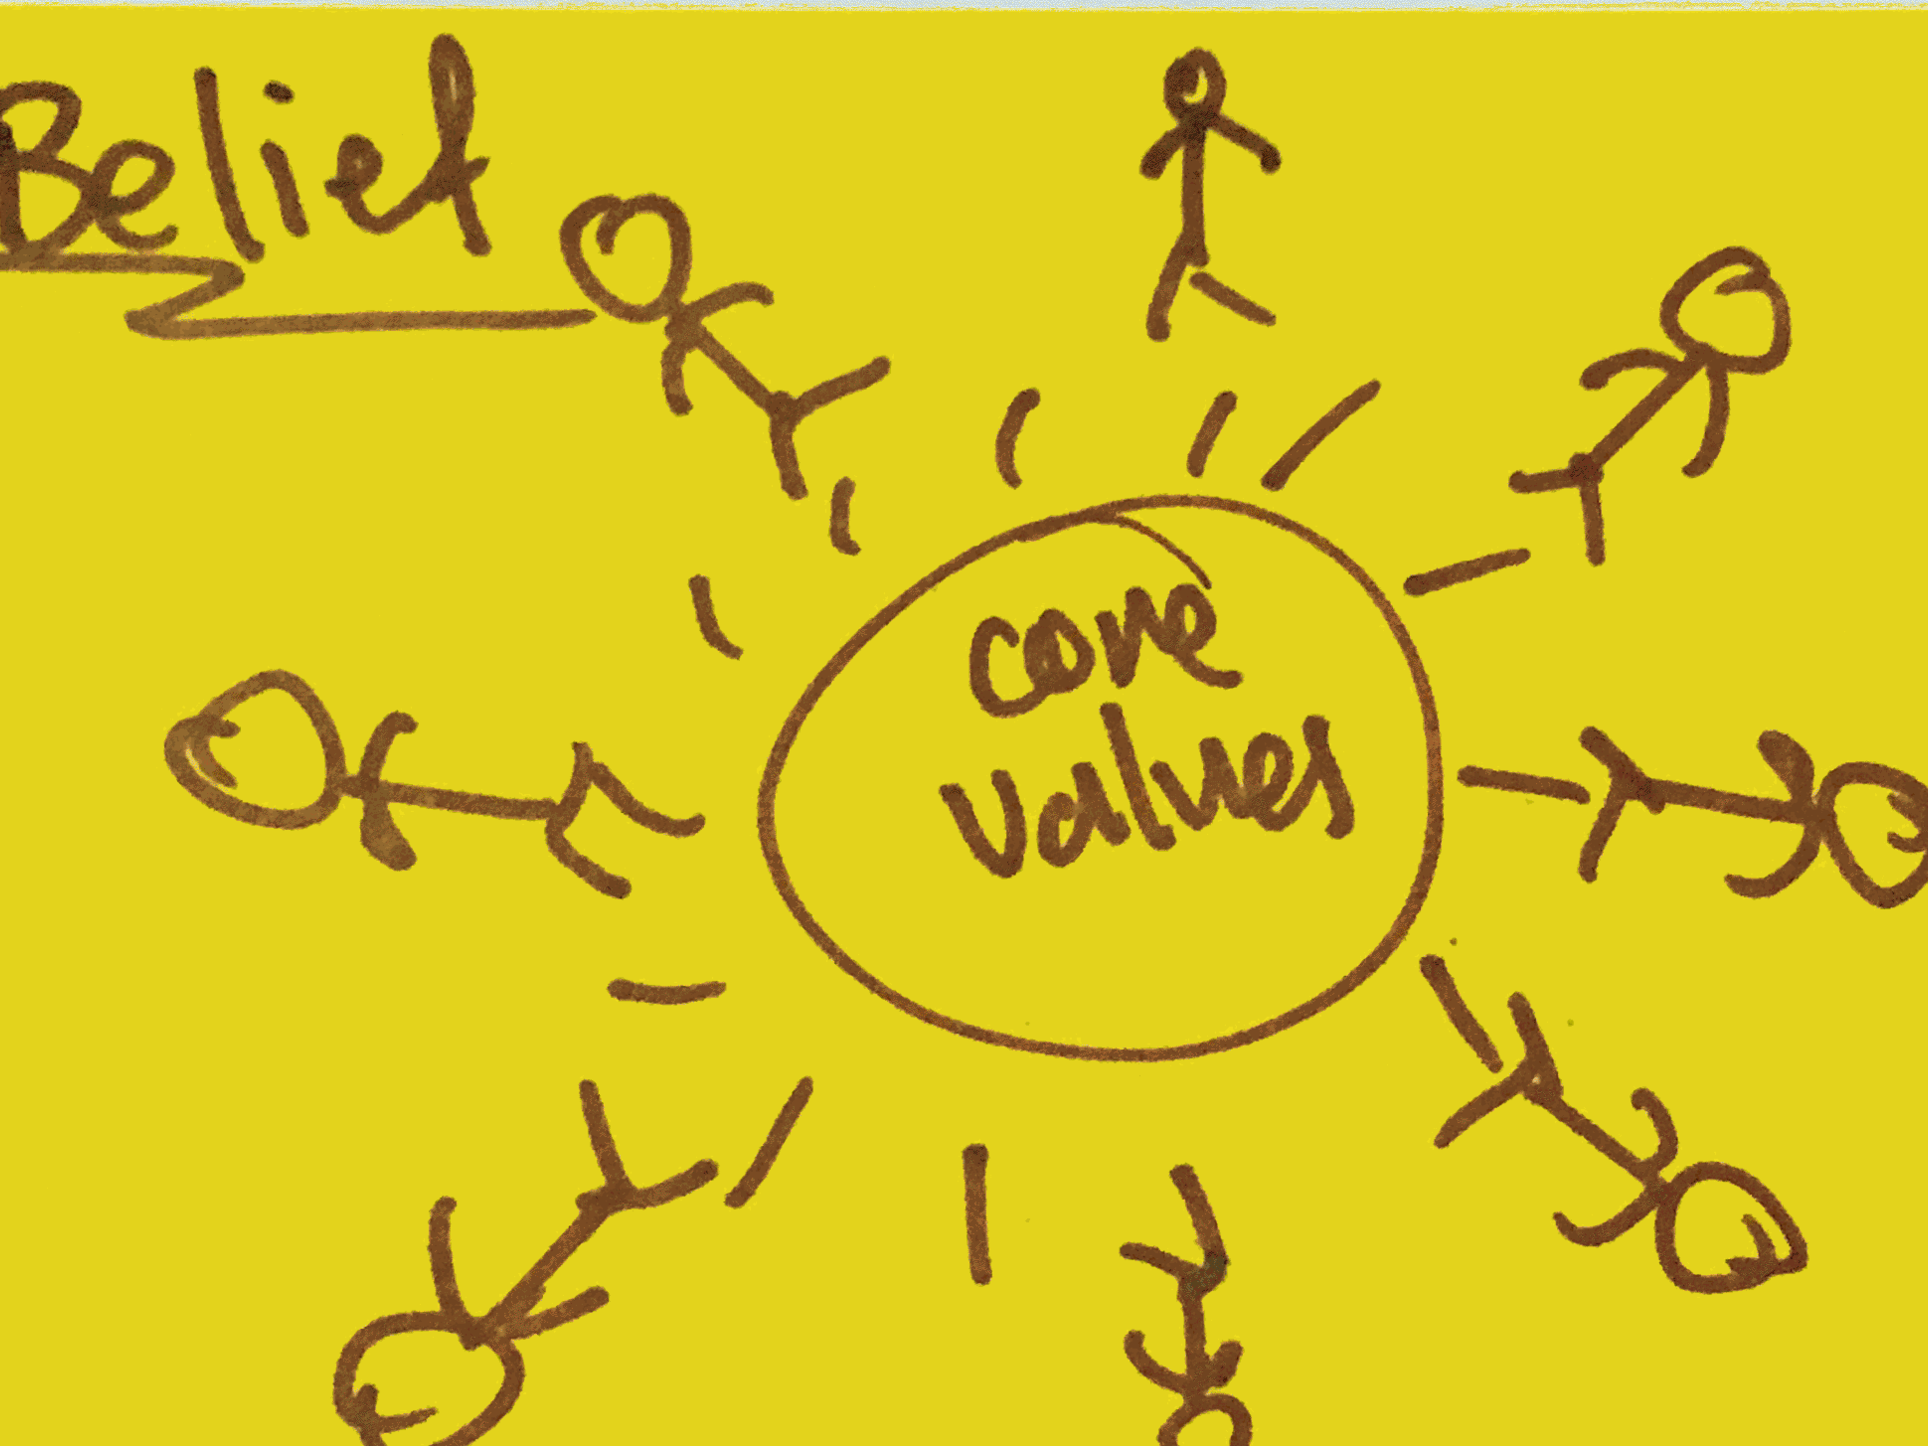 Belief Strengthsfinder Based on Core Values